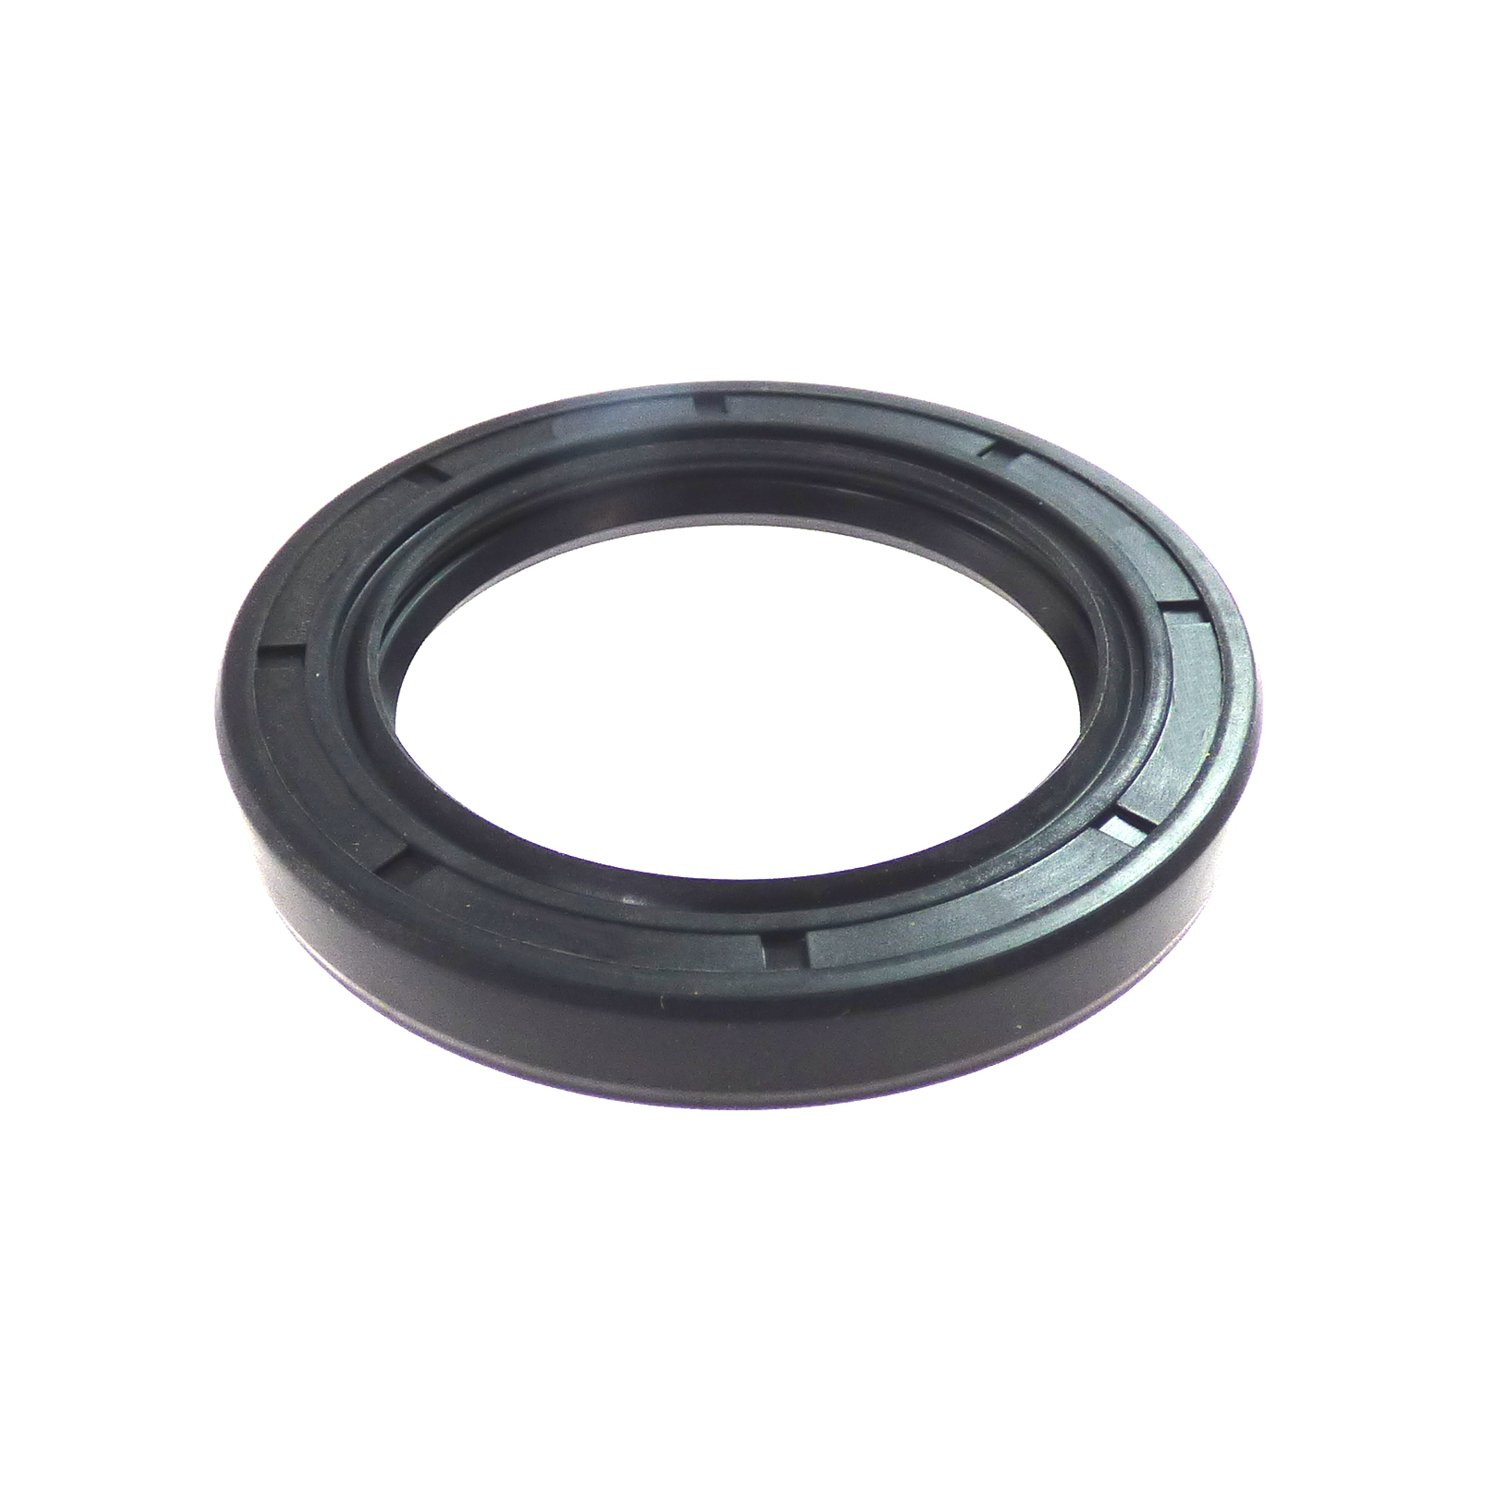 Precision 710140 Transfer Case Output and Auto Transmission Extension Housing Seal